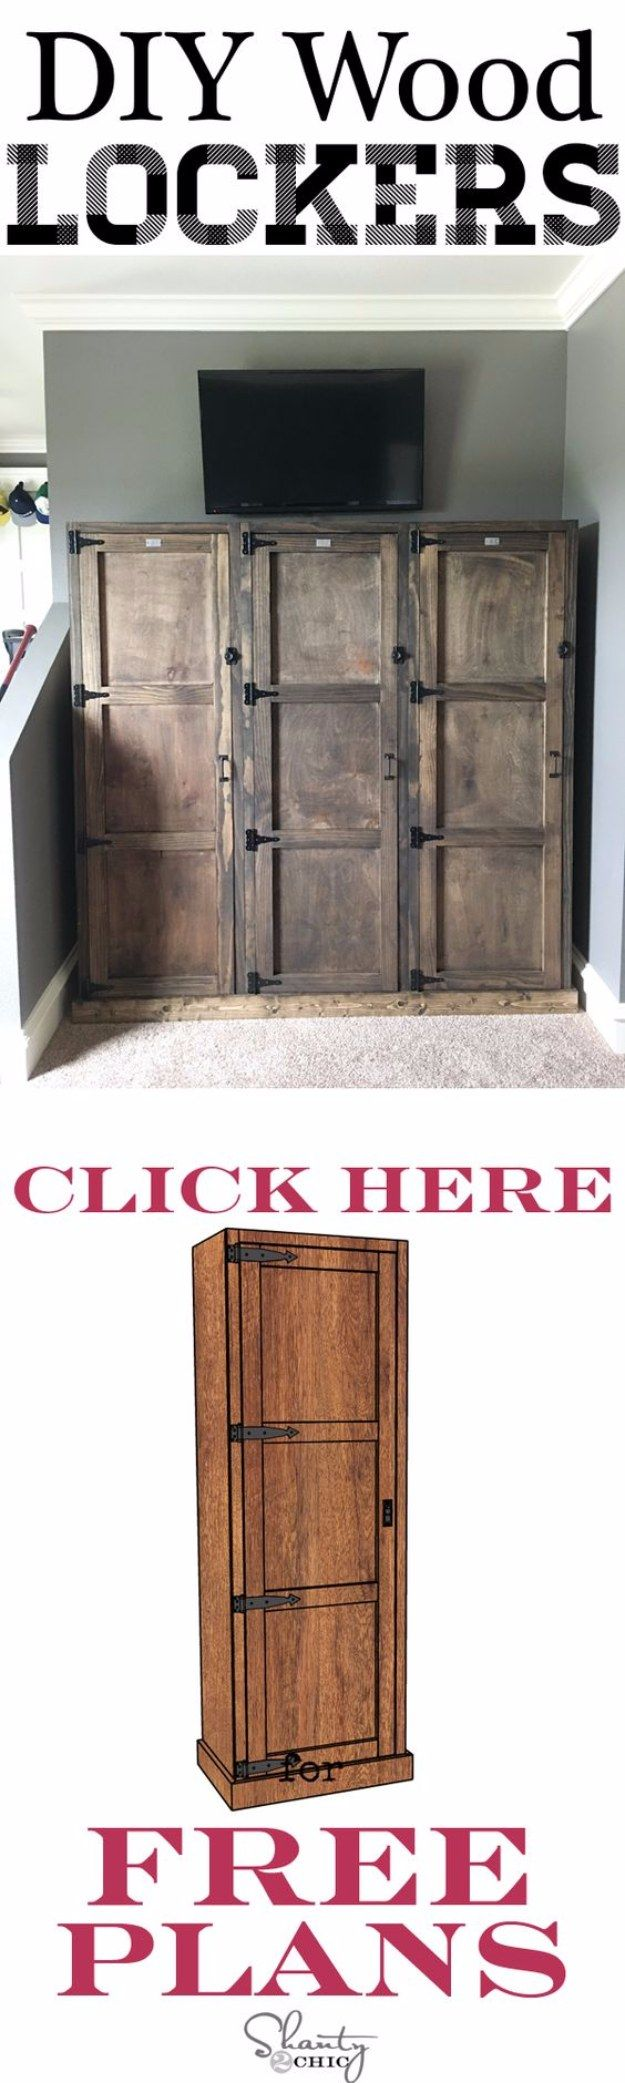 36 diy ideas you need for your garage palets libreros y carpinteria 36 diy ideas you need for your garage solutioingenieria Images